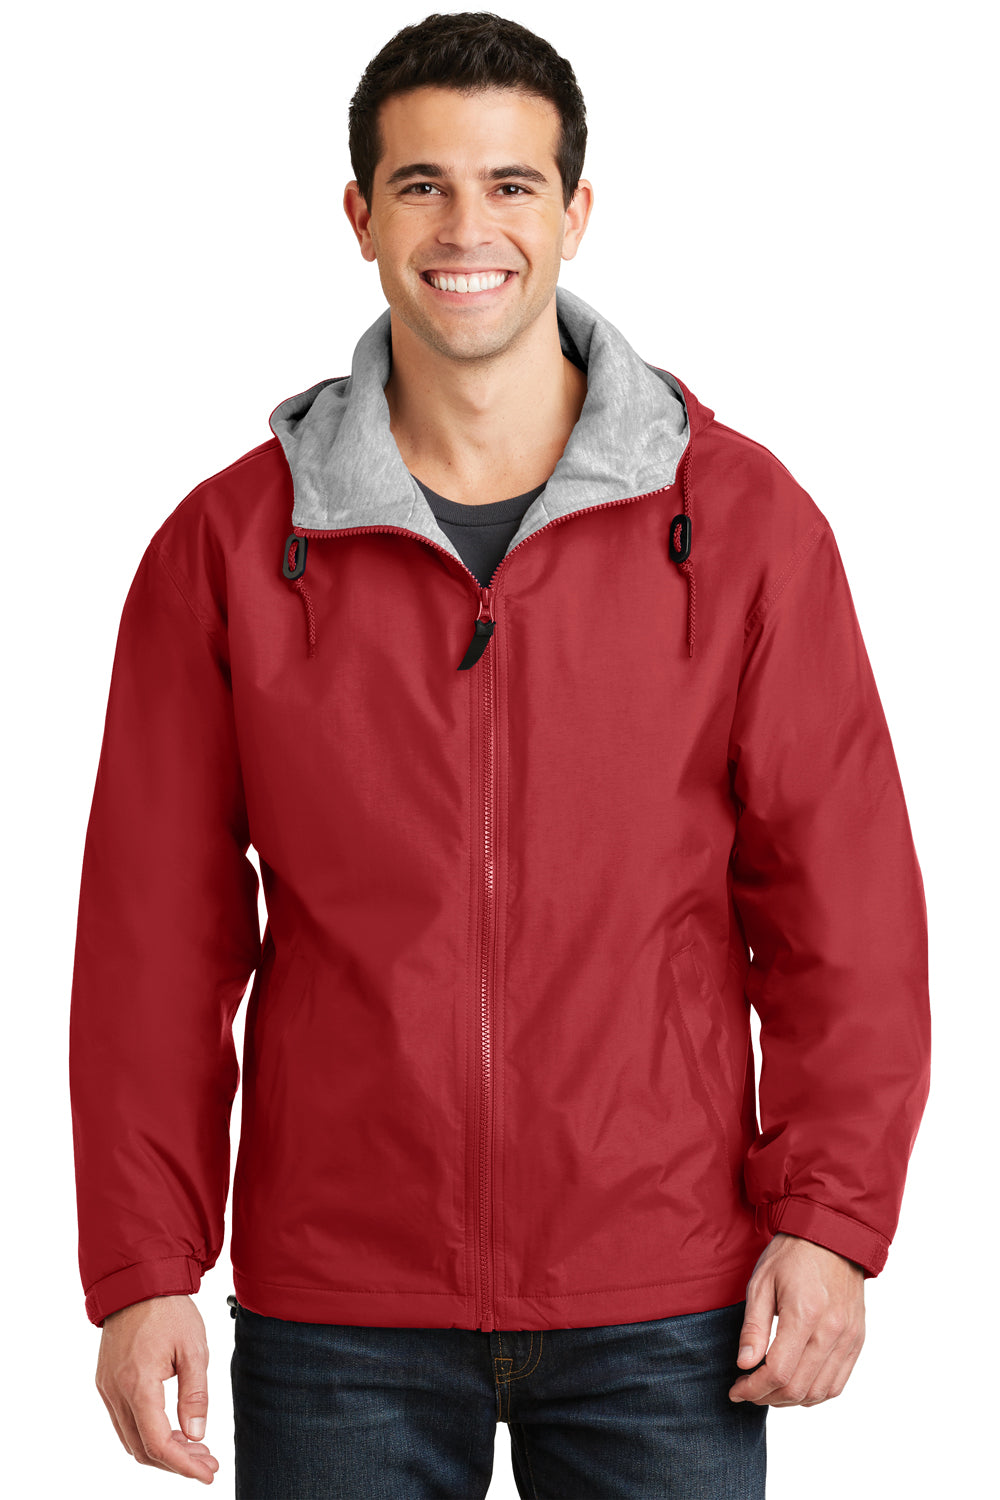 Port Authority JP56 Mens Team Wind & Water Resistant Full Zip Hooded Jacket Red Front